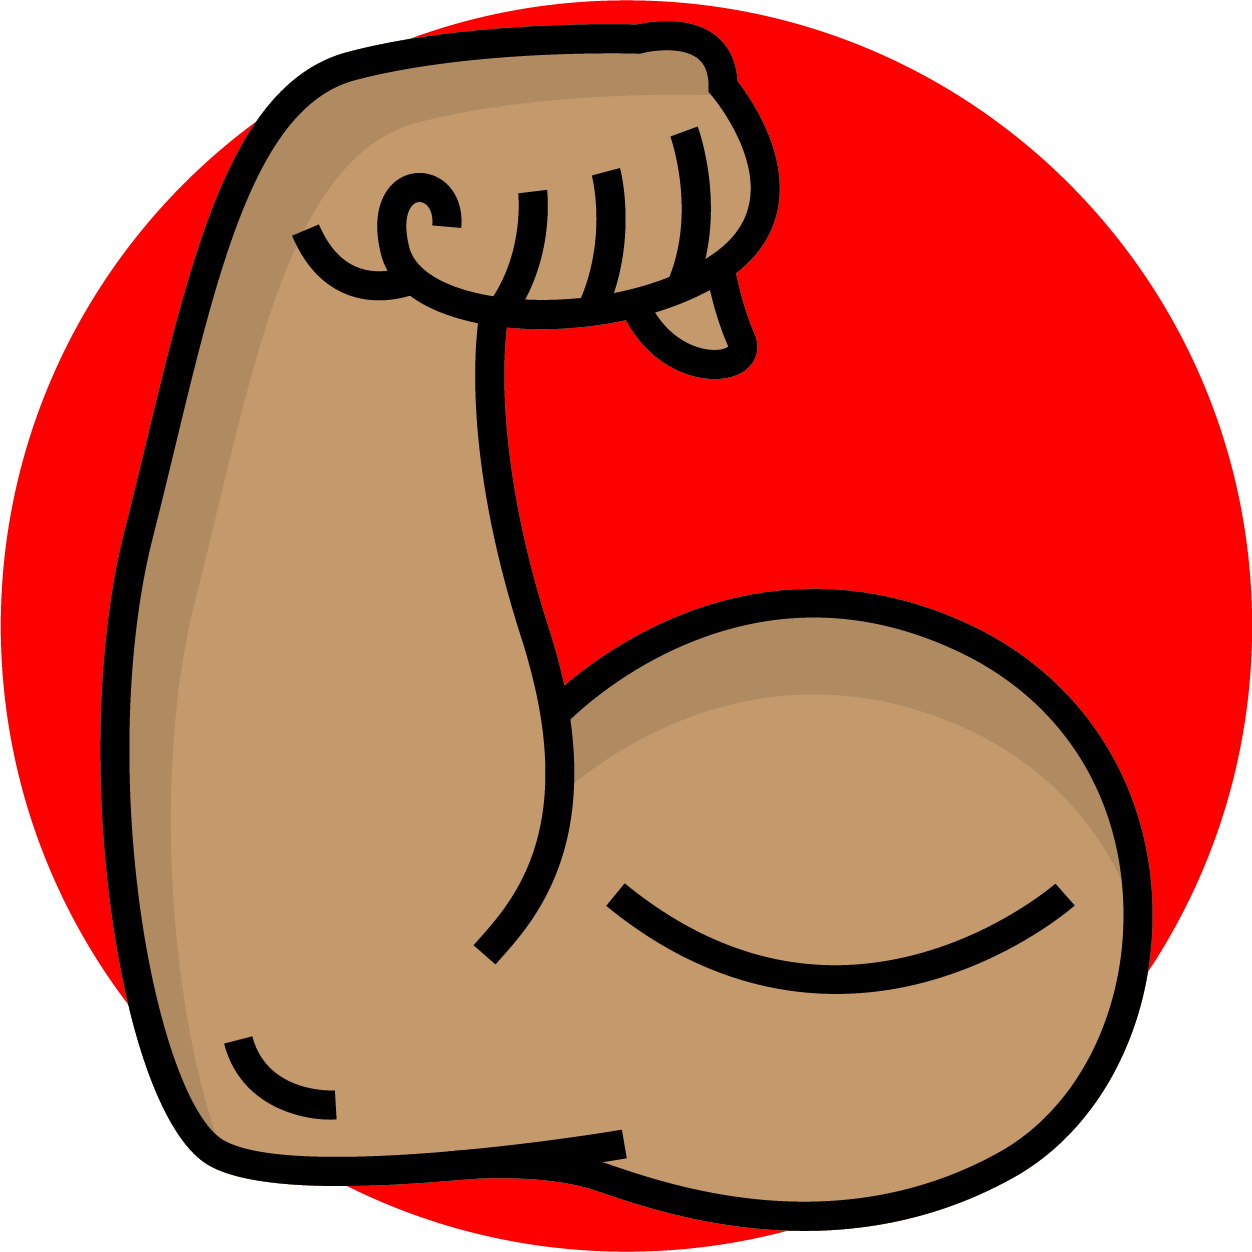 Arm muscle clip art. Elbow clipart strong hand